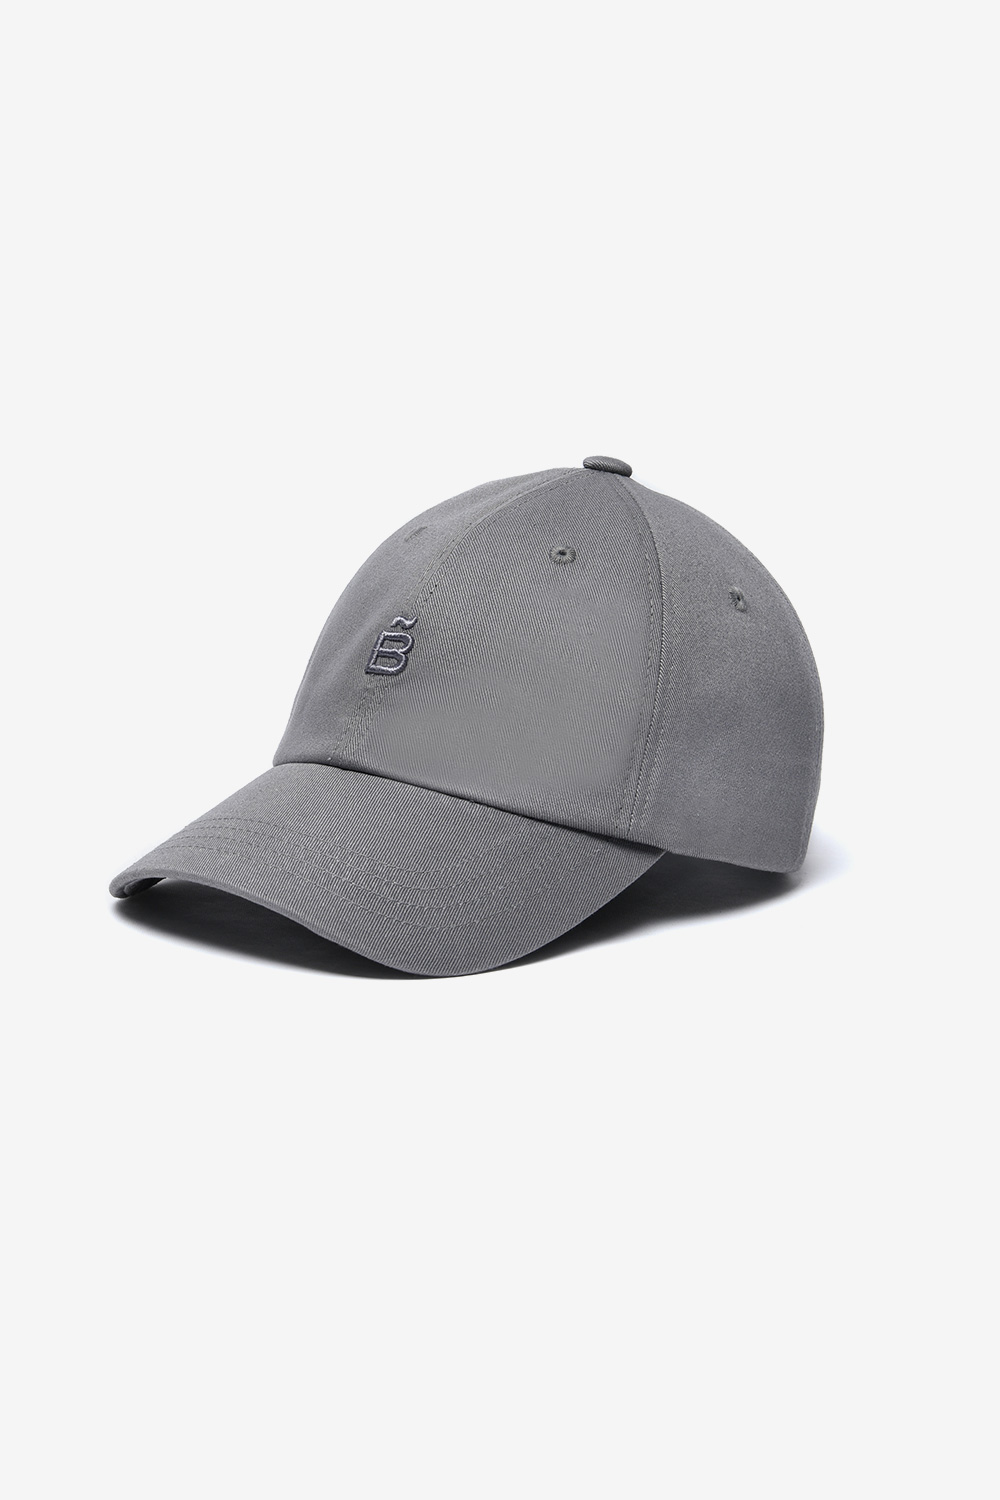 Slow B Basic Ball Cap_Grey BS0SCP501GR00F